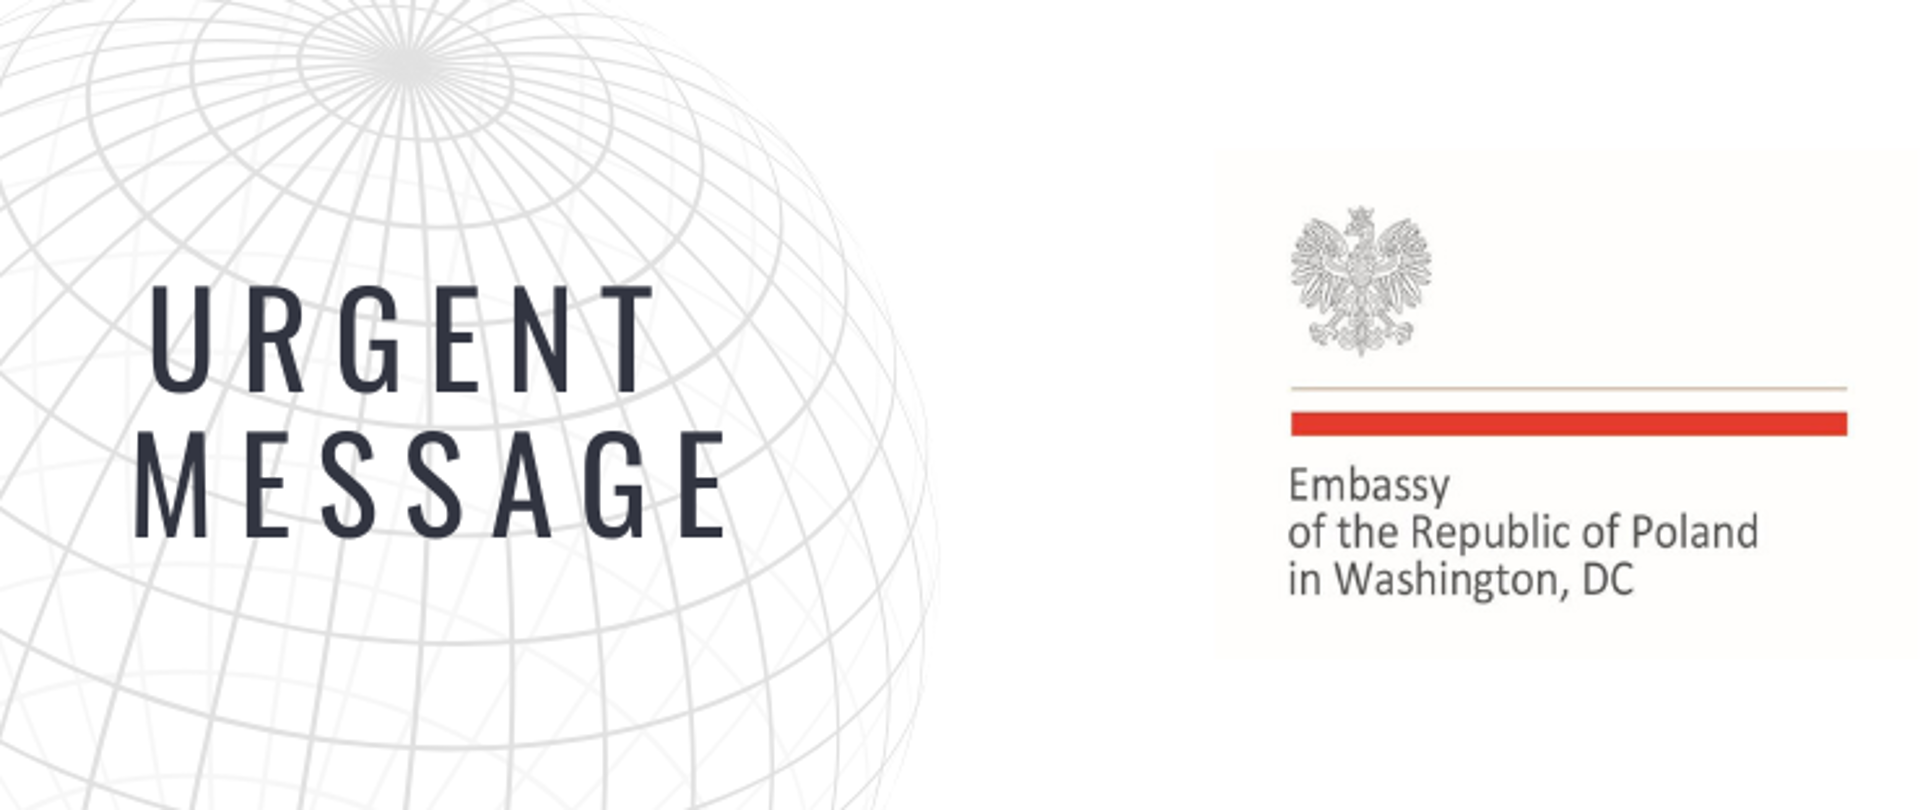 Logo of the official announcement of the Embassy of Poland in Washington, DC